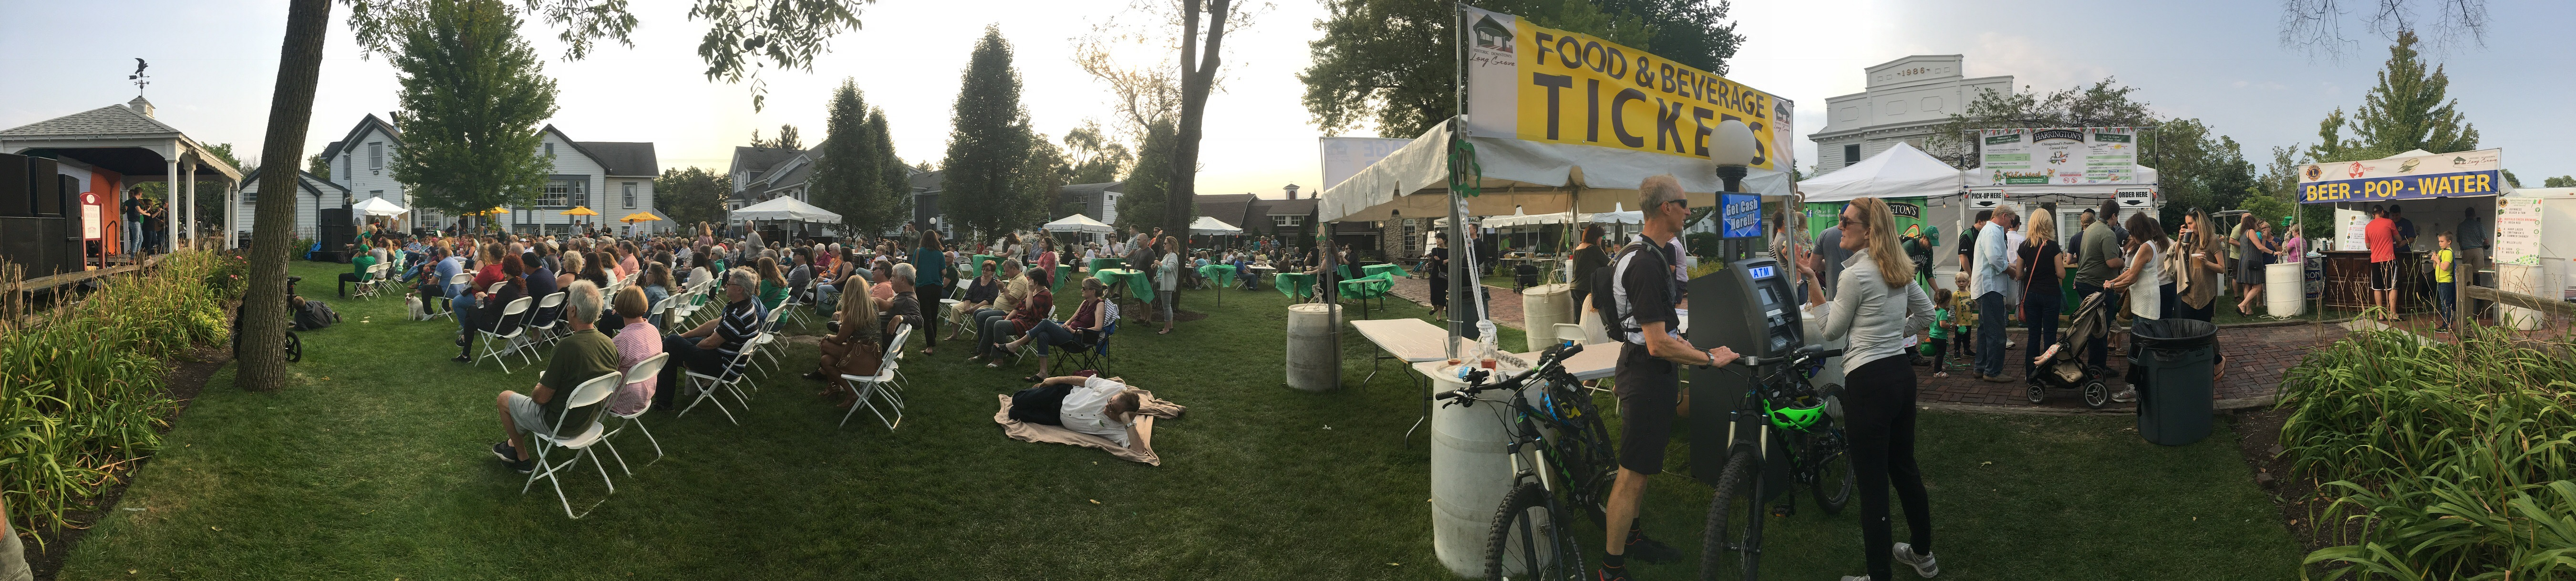 Irish Days Pano